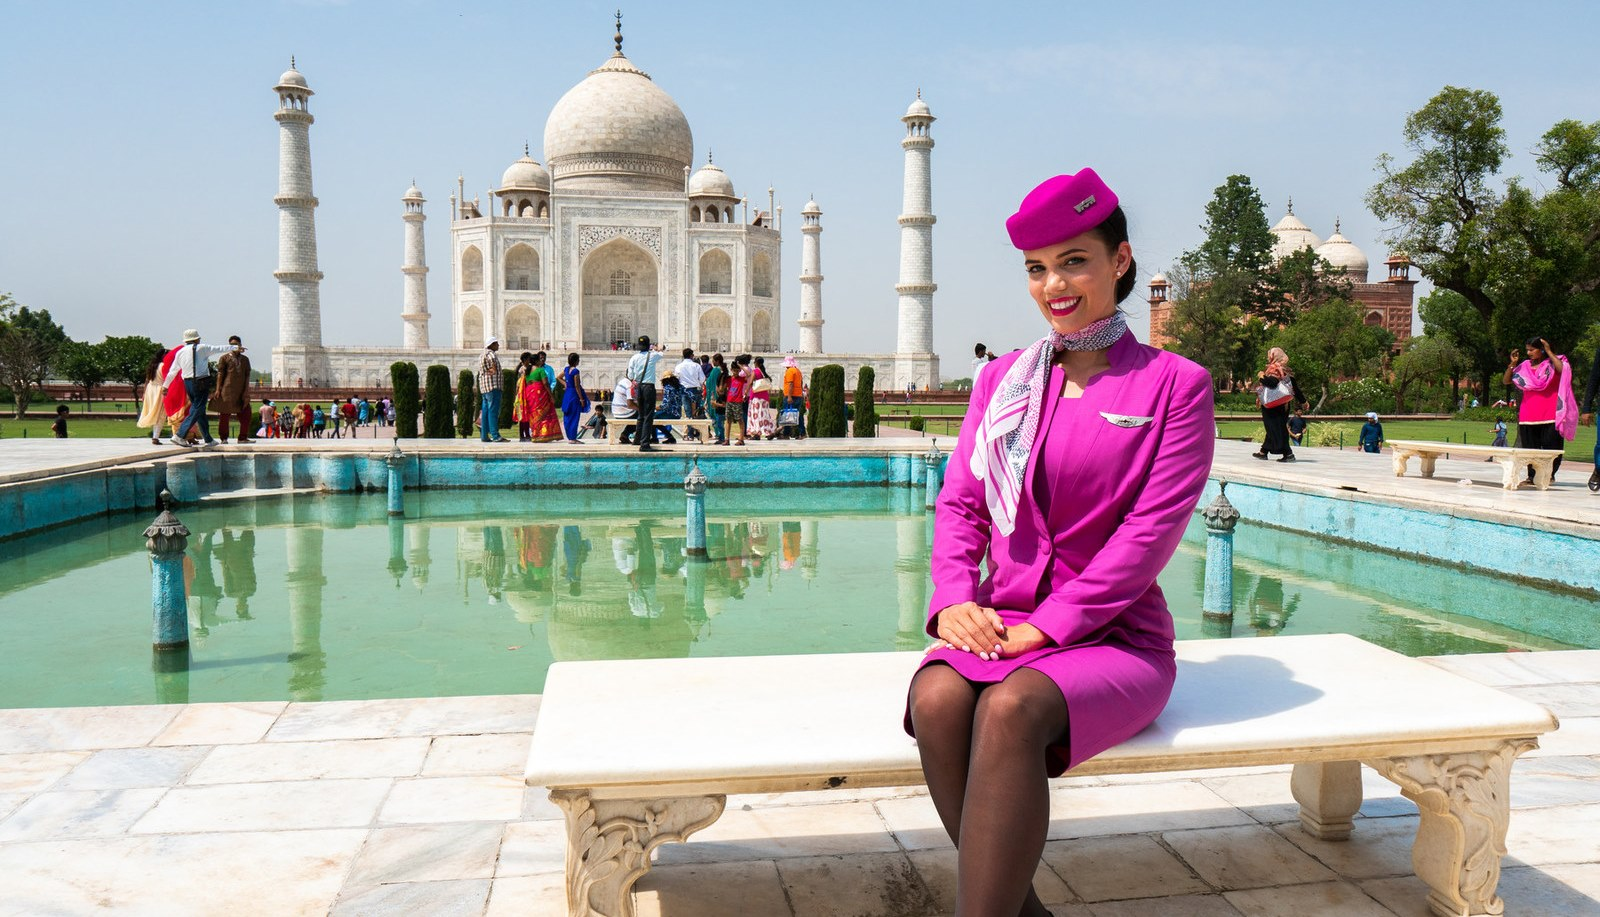 WOW air har fået Indien på rutekortet. (Foto: CNW Group/WOW air)